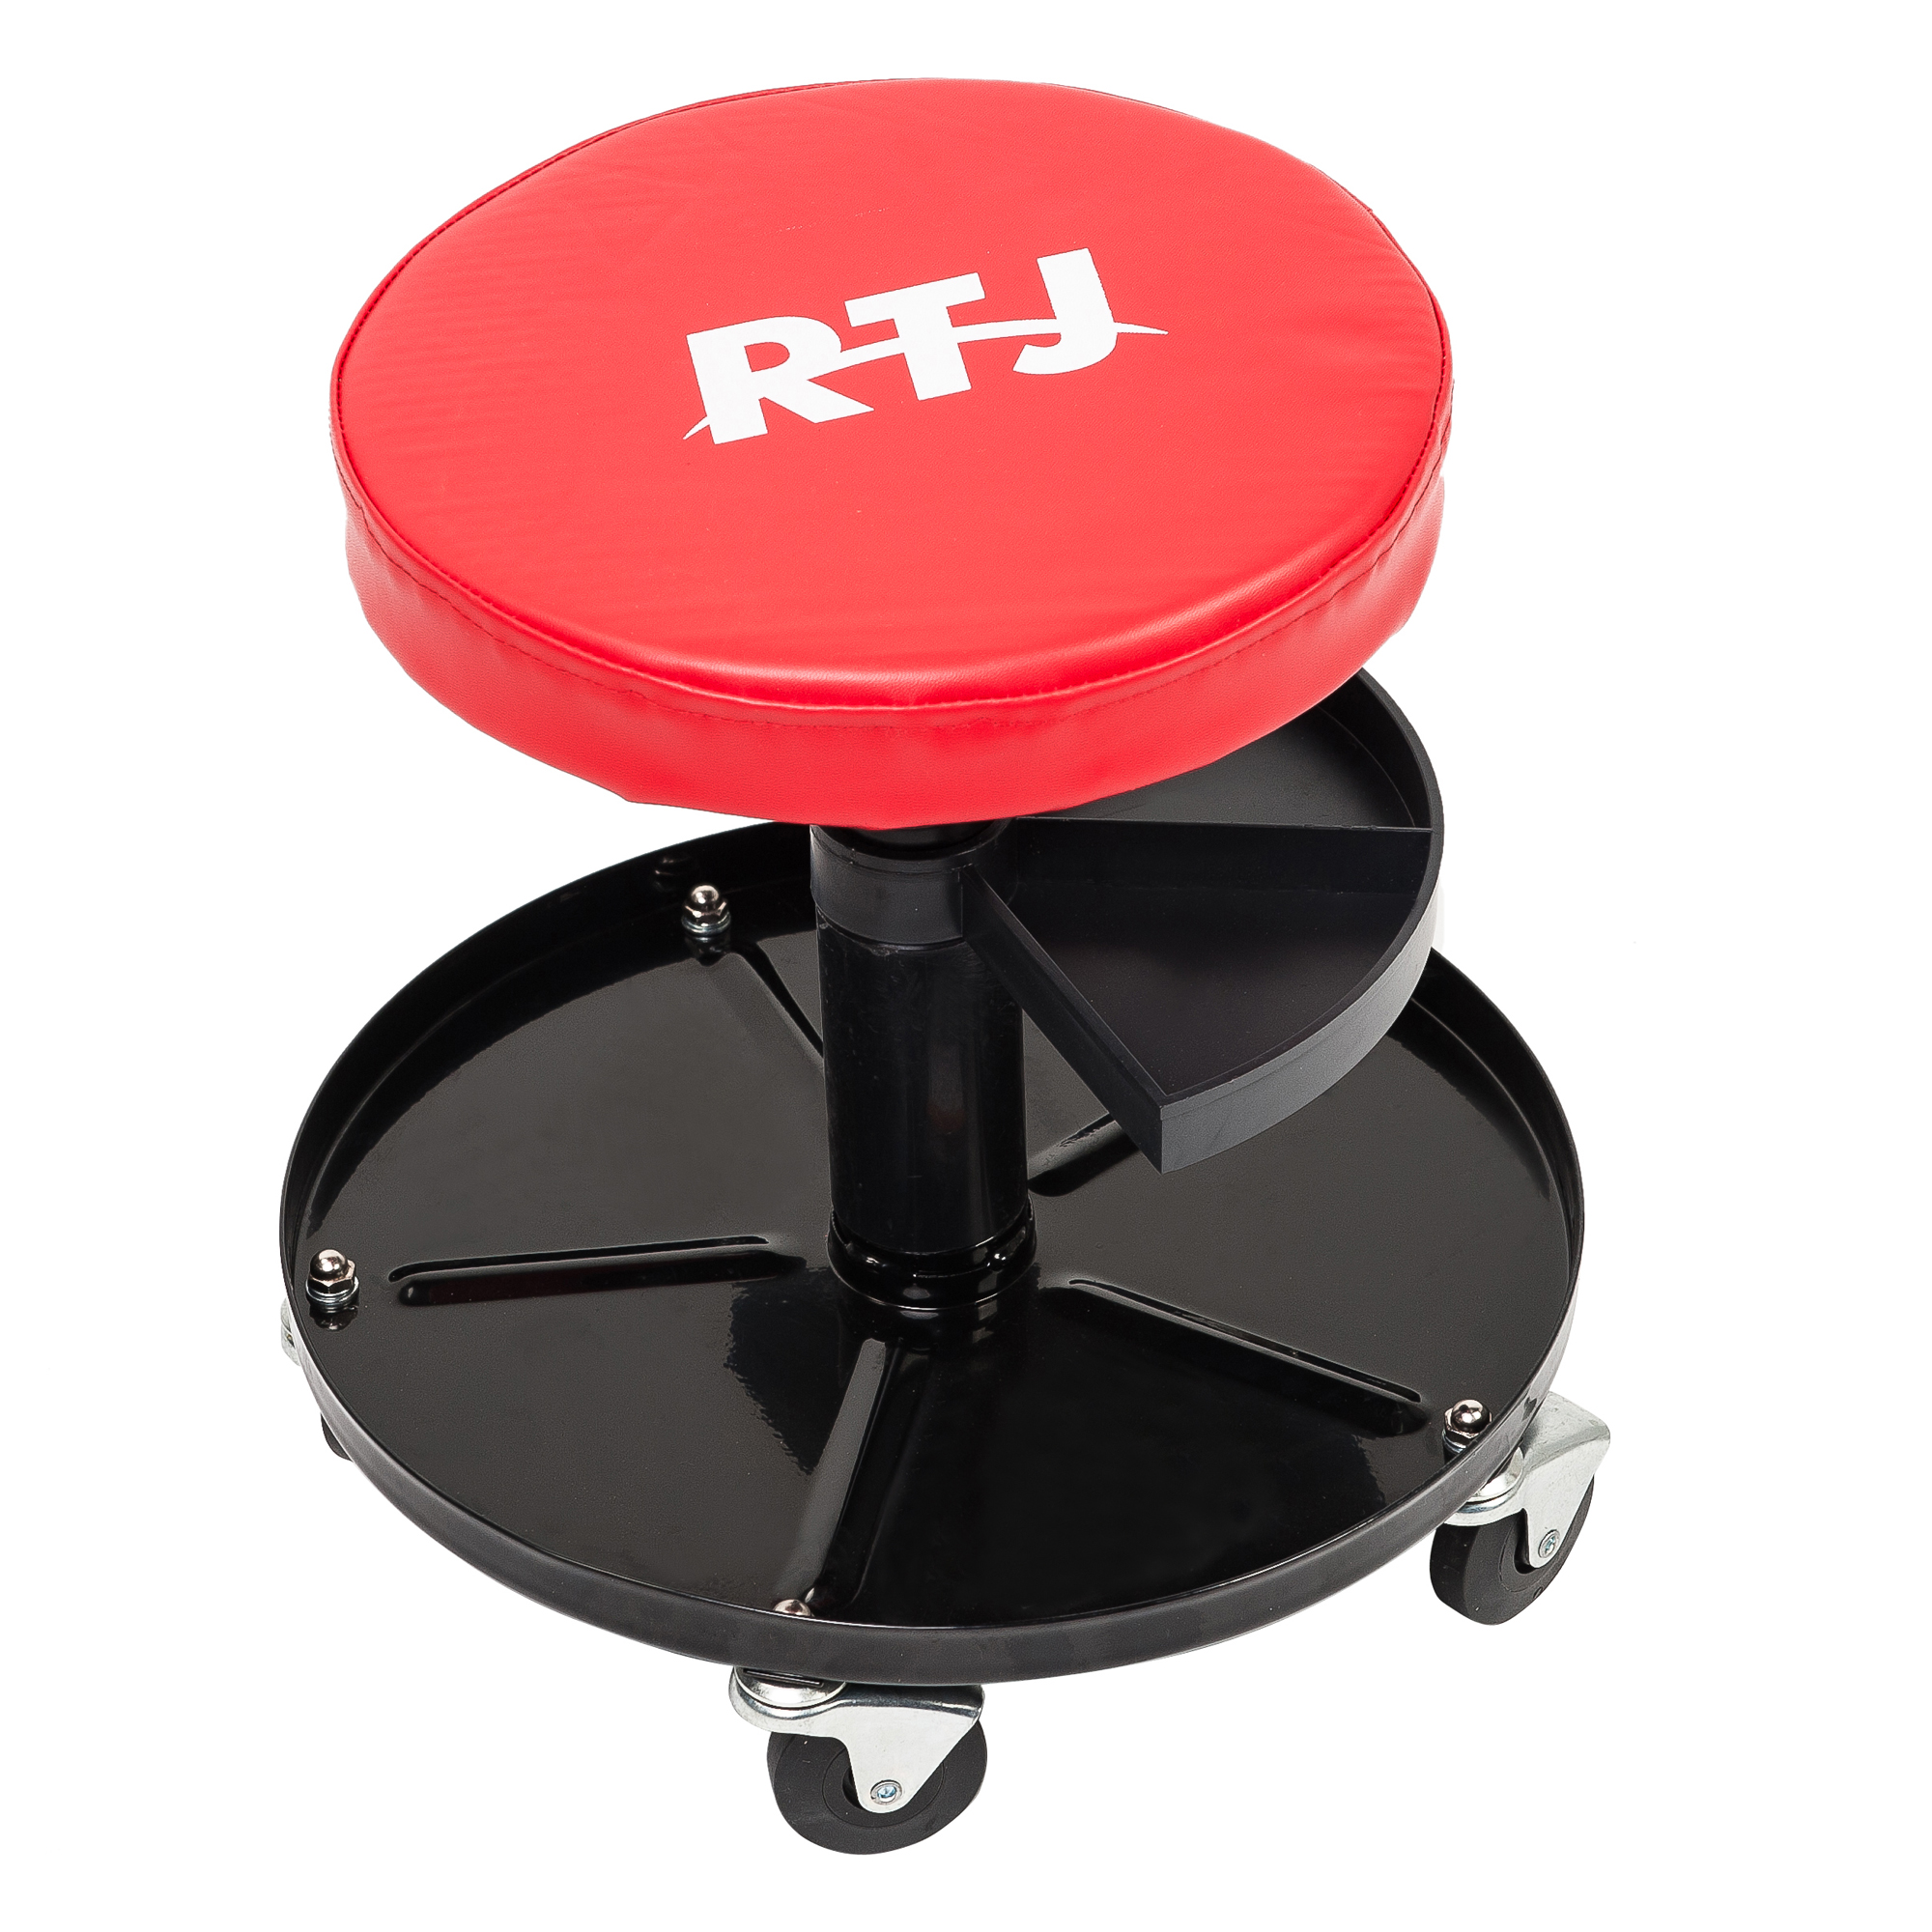 RTJ 300 lbs Capacity Pneumatic Mechanic Roller Seat Adjustable Rolling Stool, Red and Black